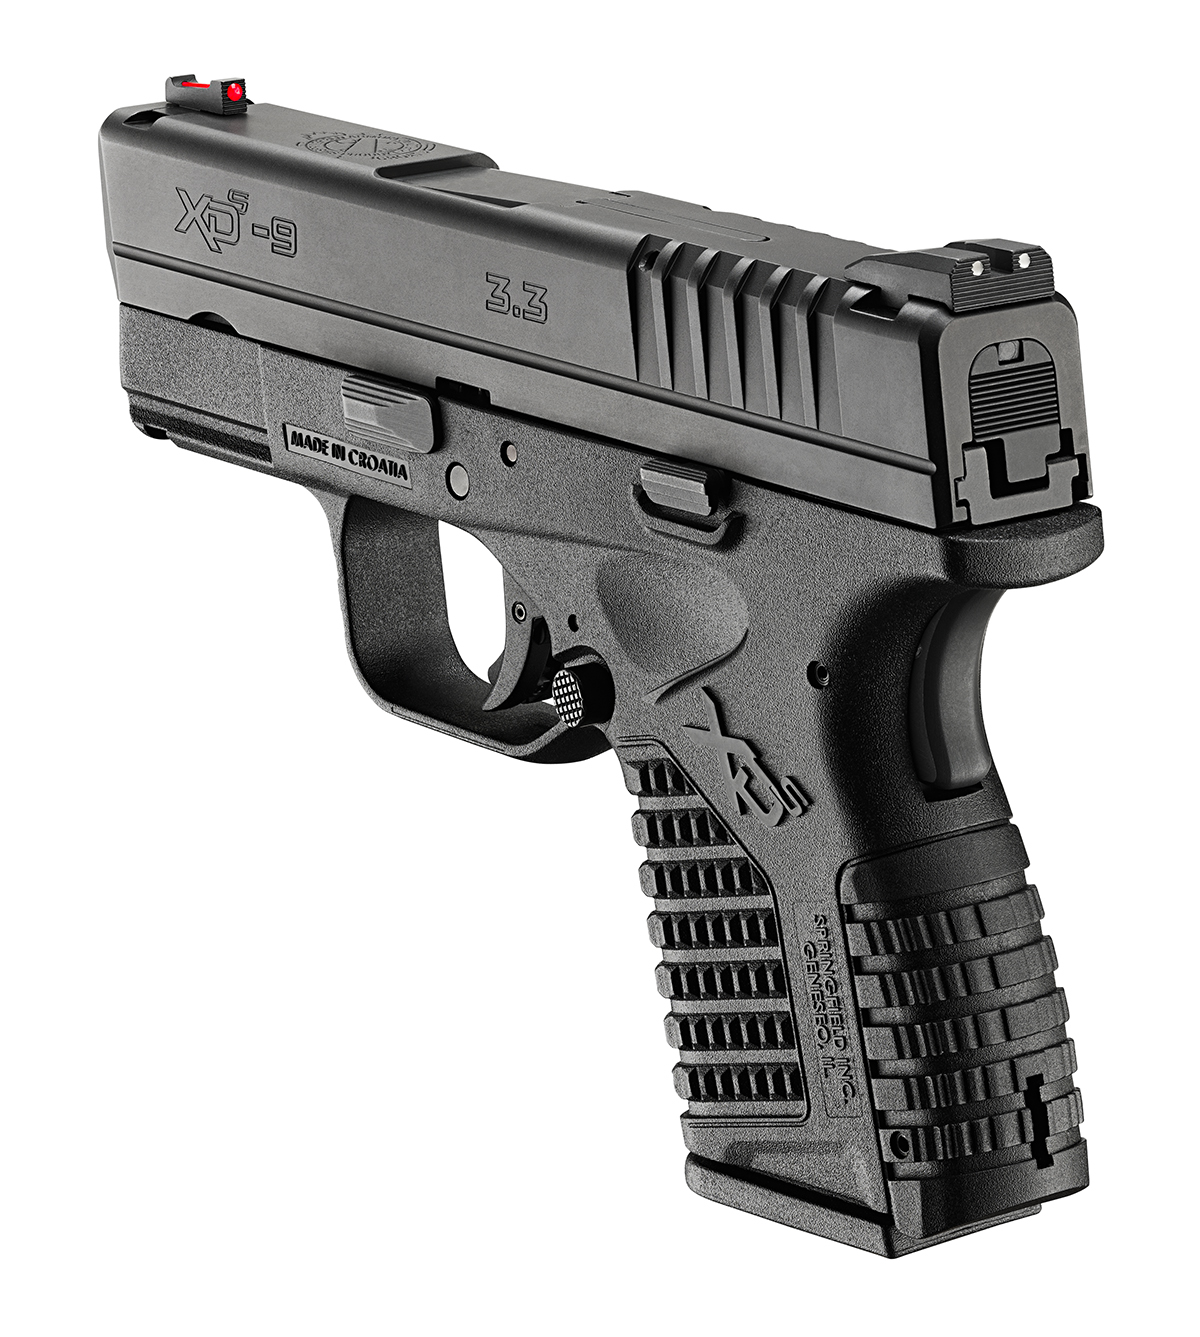 Springfield XDS rear side view